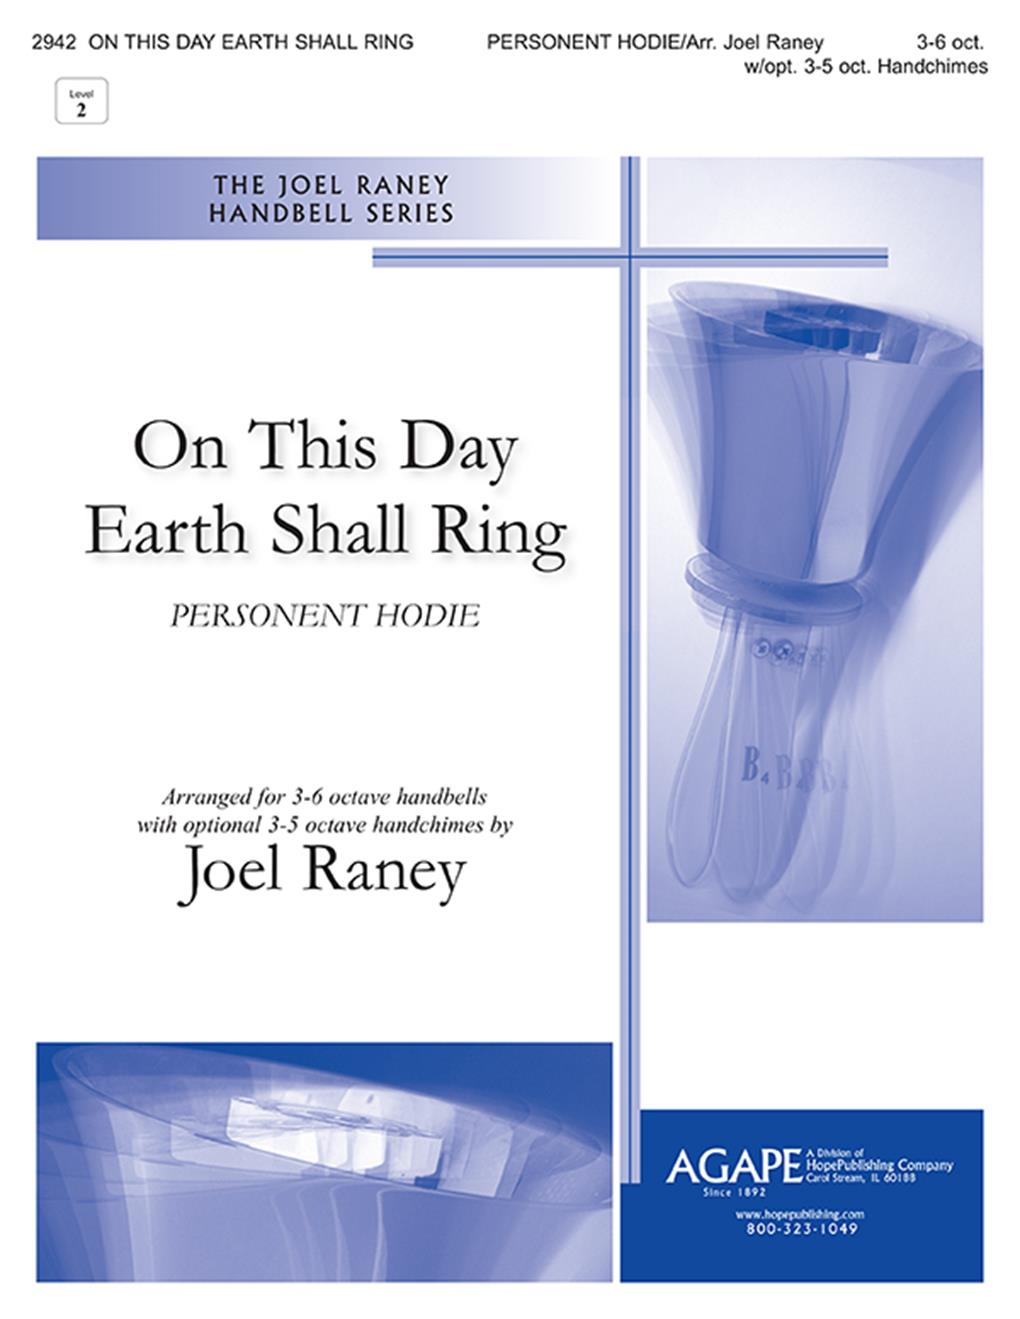 On This Day Earth Shall Ring - 3-6 Oct. w-opt. 3-5 Oct. Handchimes Cover Image